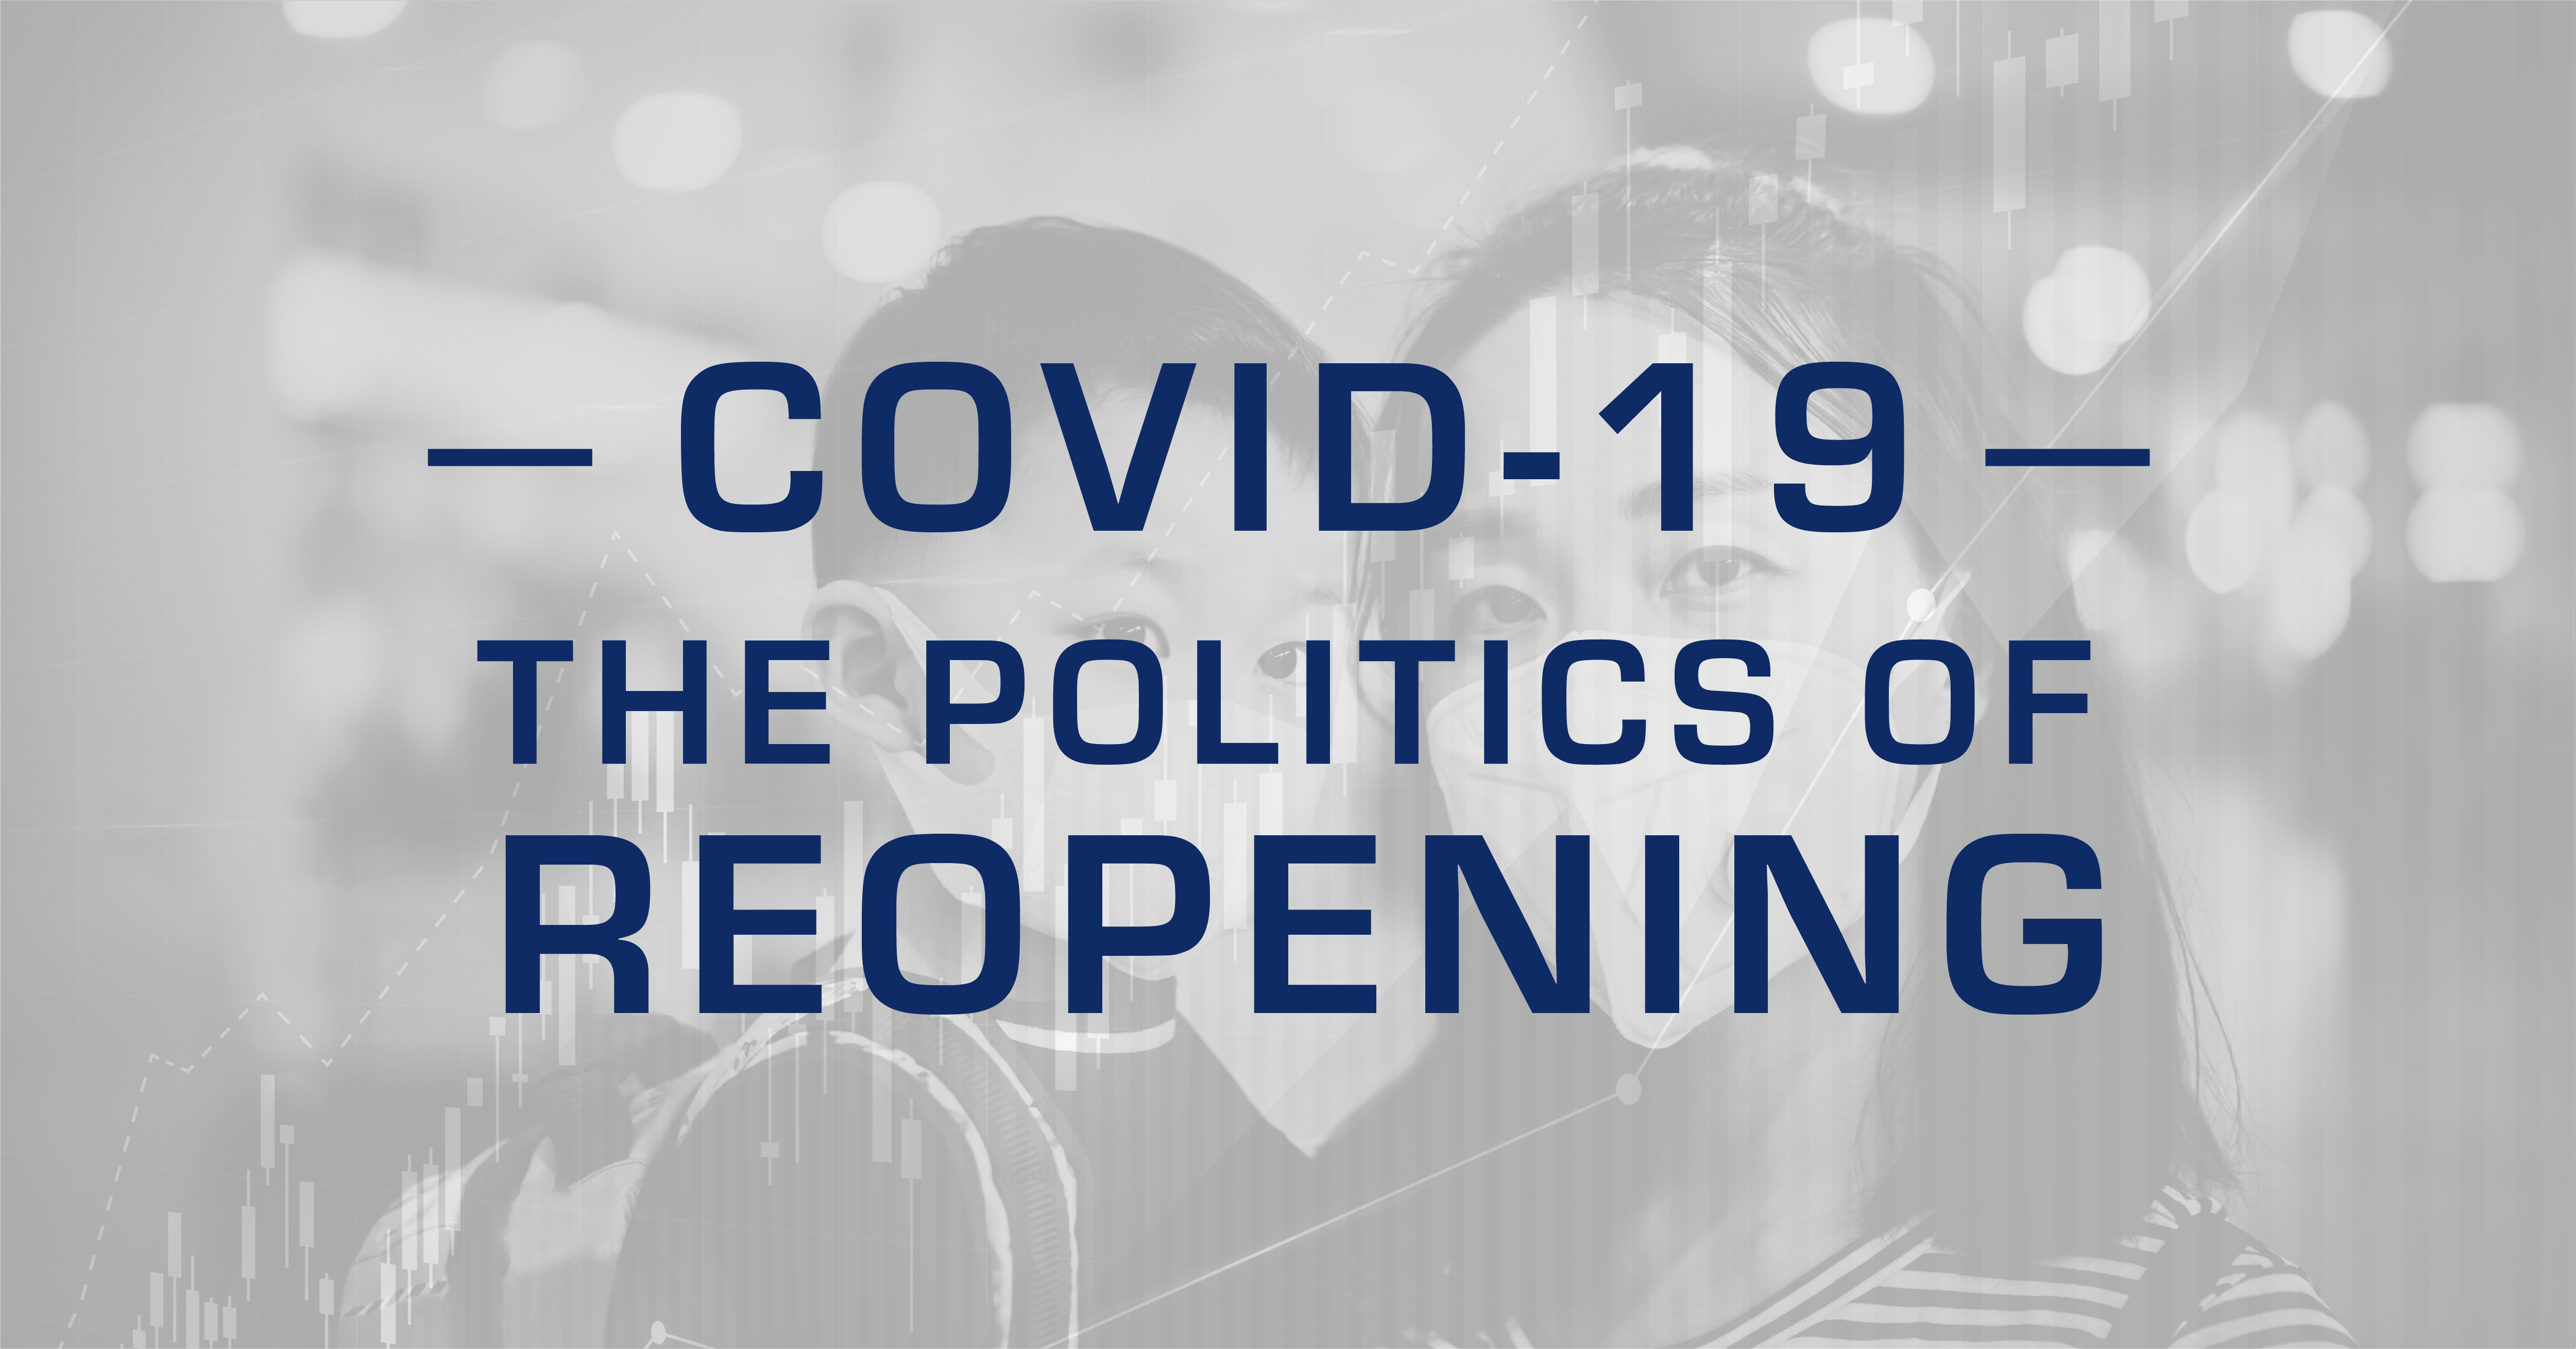 COVID-19 - Politics of Reopening